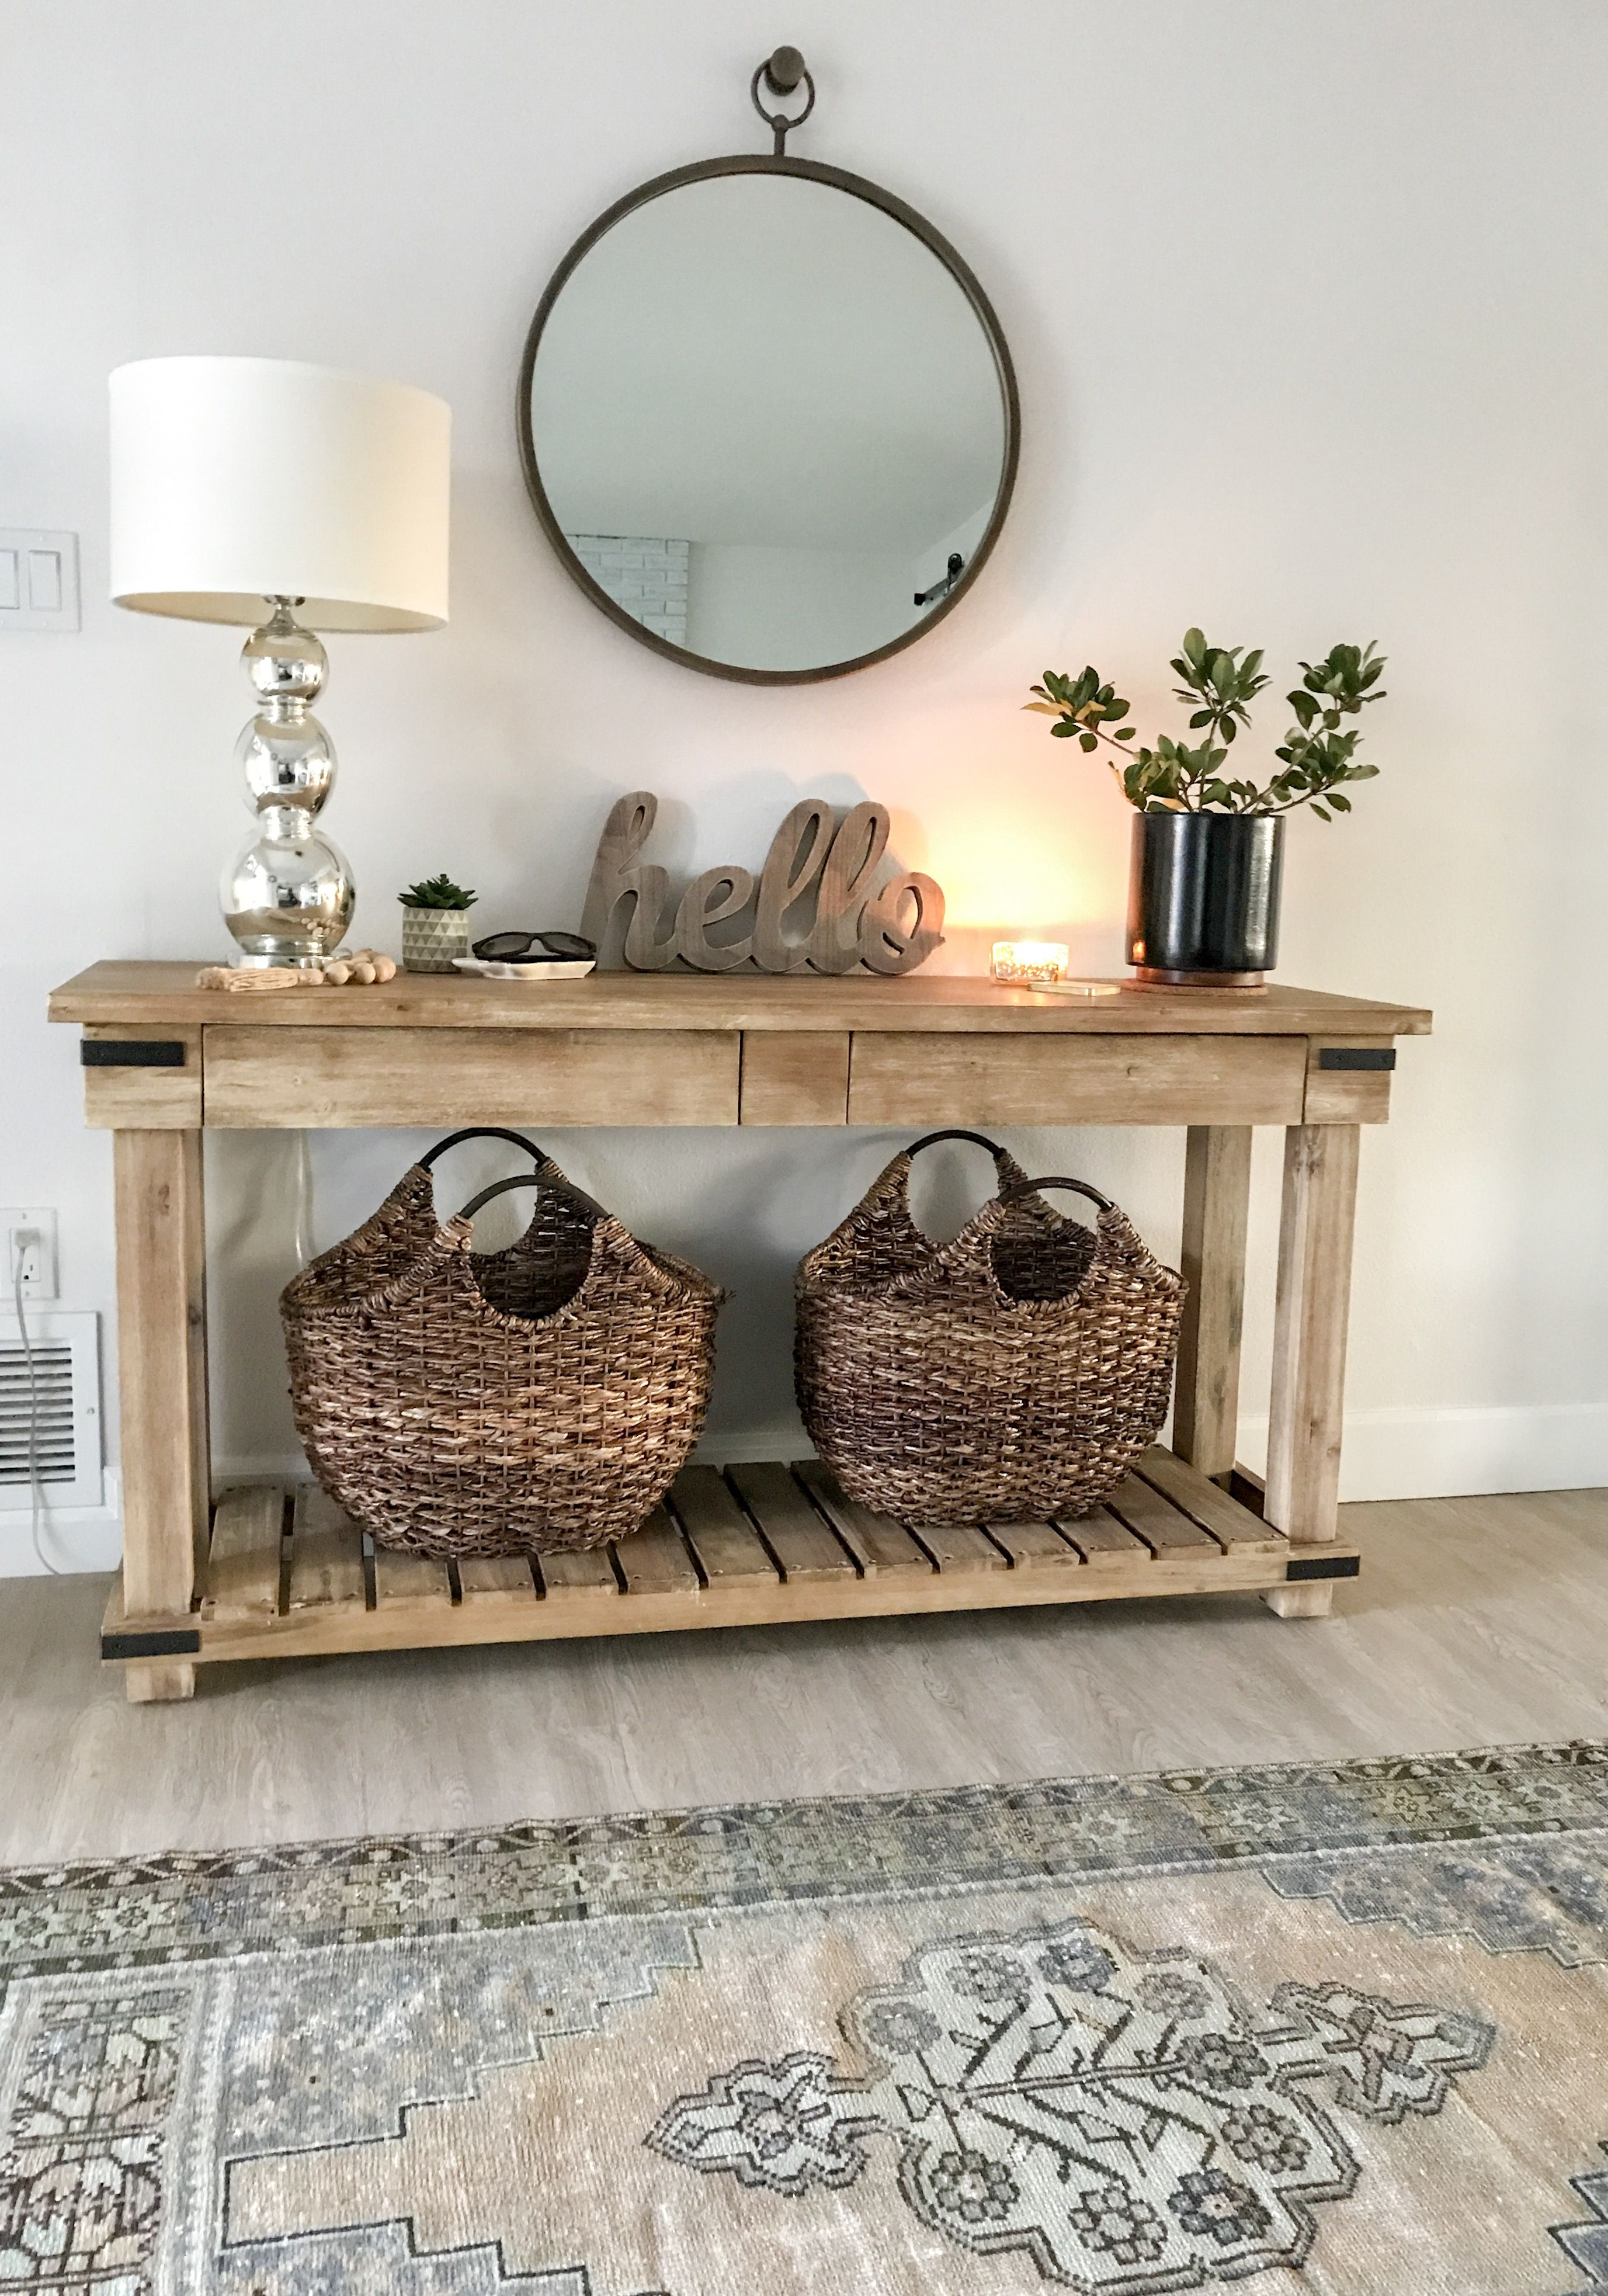 Fall Entryway Decor: Easy + Simple Ways to Welcome Fall into Your Home - 1111 Light Lane